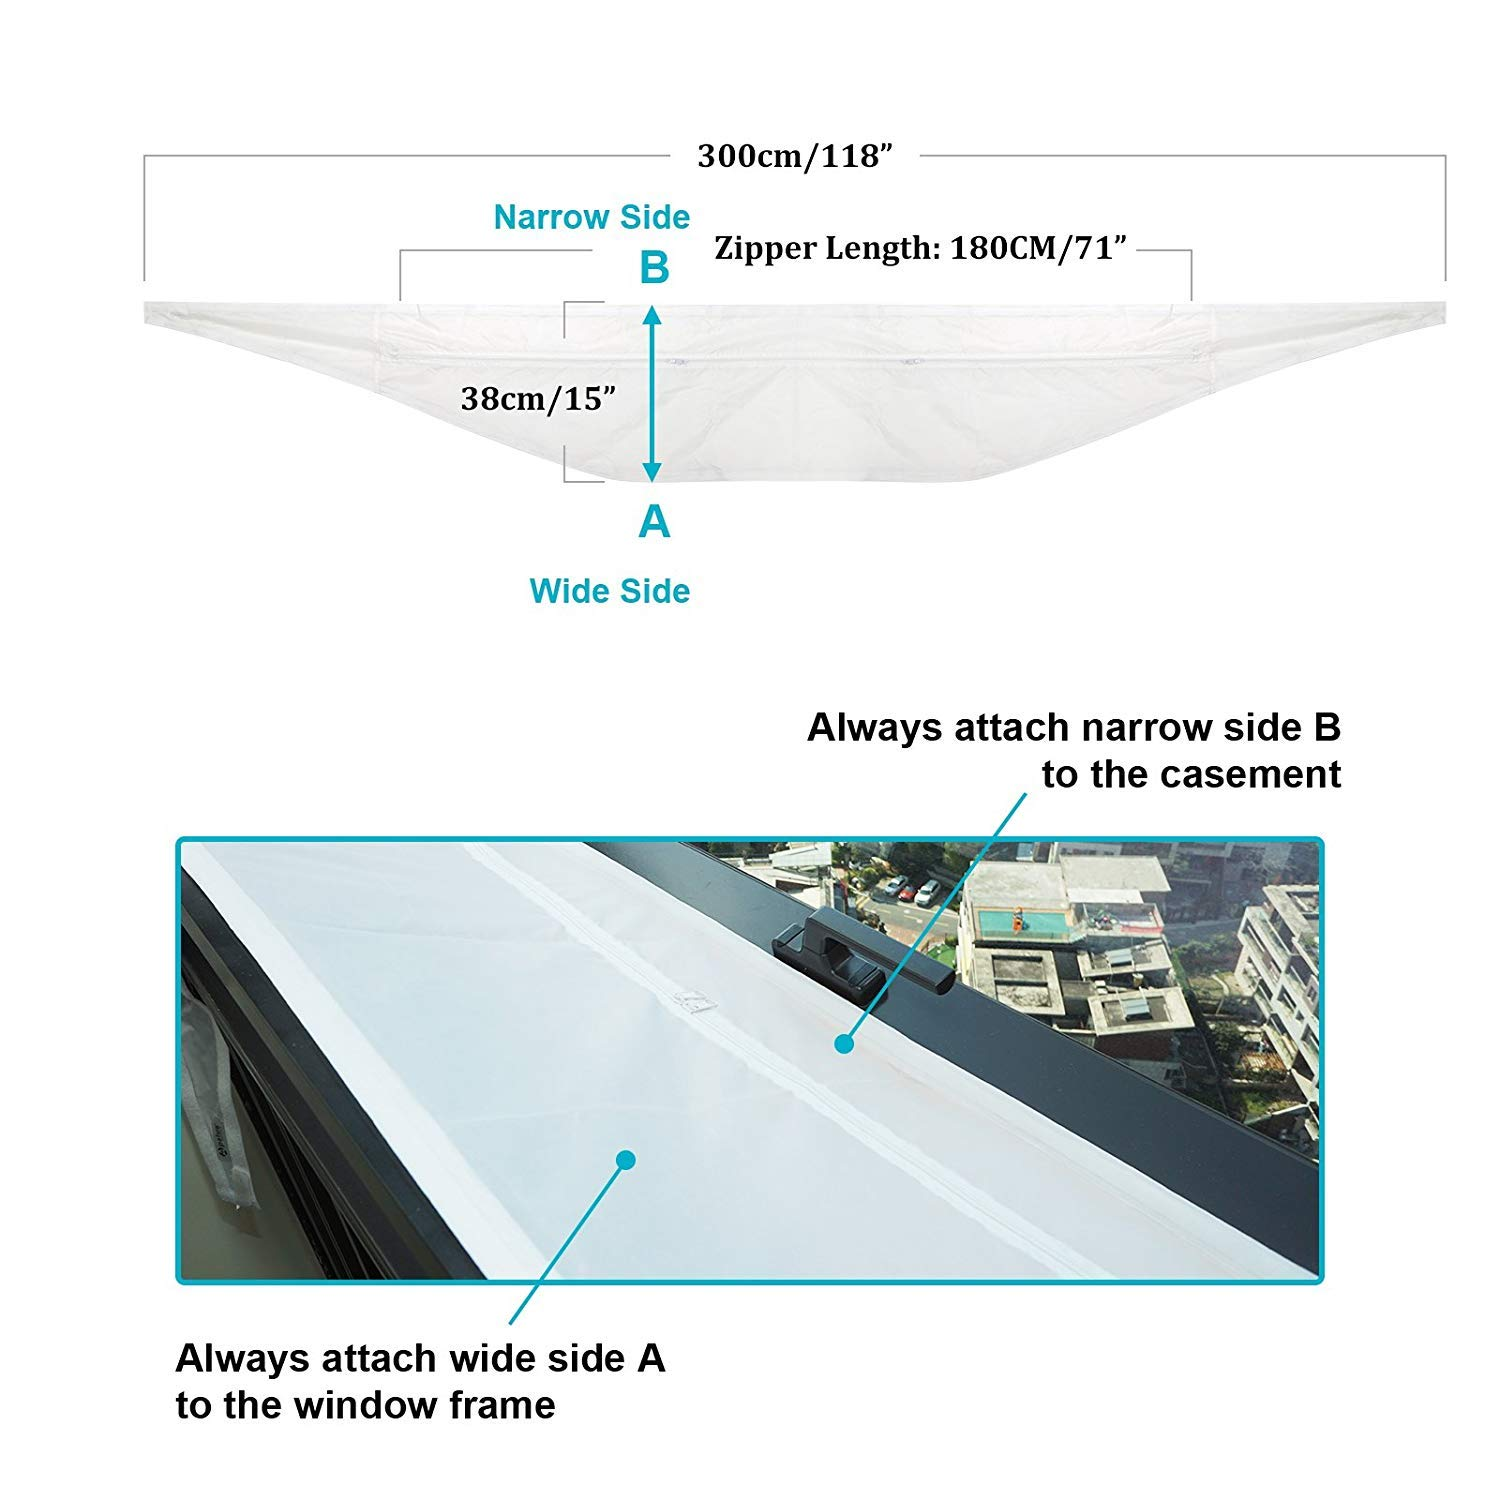 HOOMEE 300 cm Universal Window Seal for Portable Air Conditioner and Tumble Dryer – Works with Every Mobile Air-Conditioning Unit, Easy to Install - Air Exchange Guards with Zip and Adhesive Fastener by HOOMEE (Image #6)